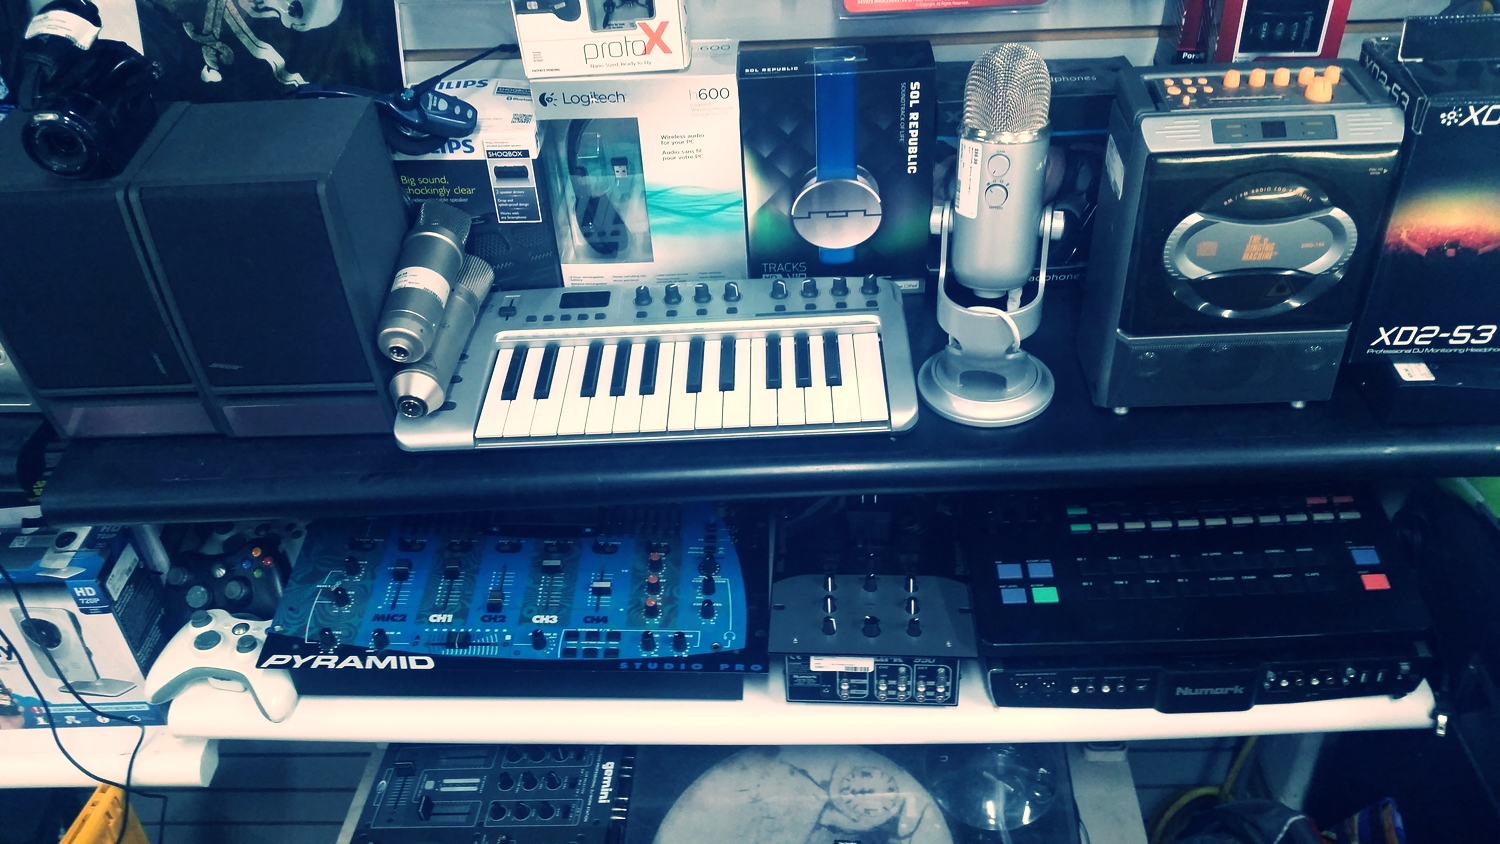 We carry mixers, keyboards, microphones, EQ and compression interfaces,